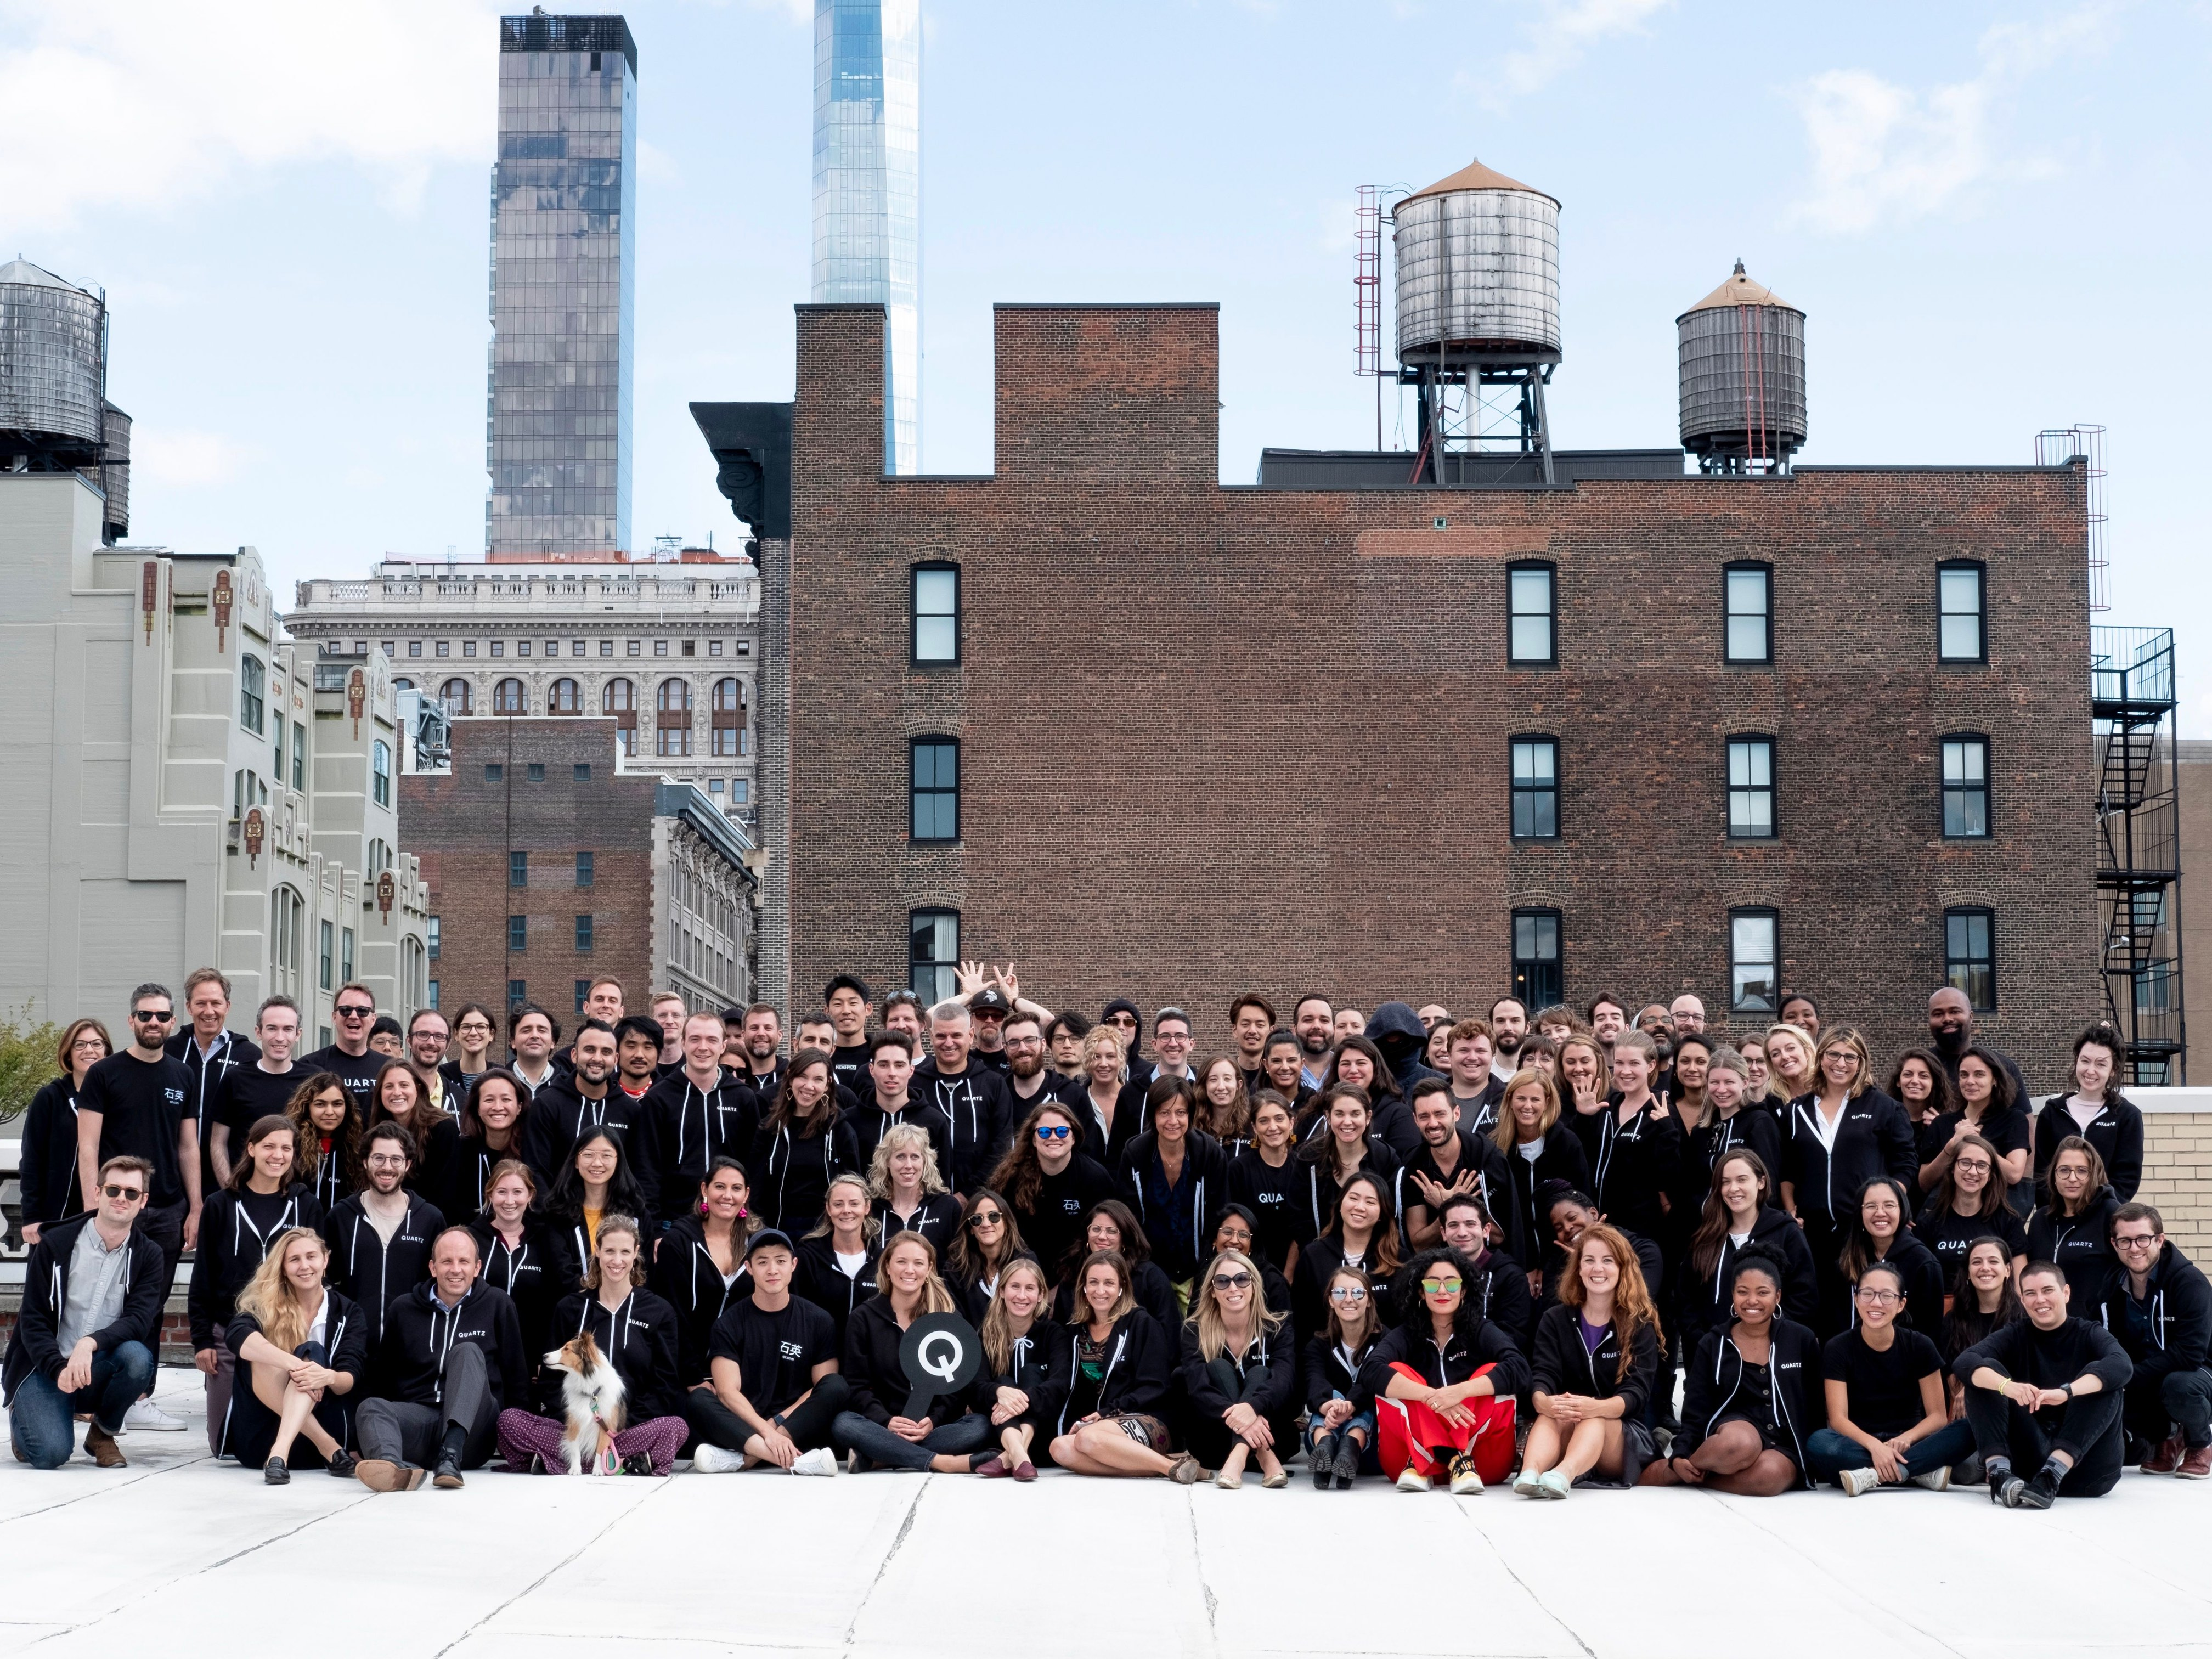 Our staff poses on the rooftop